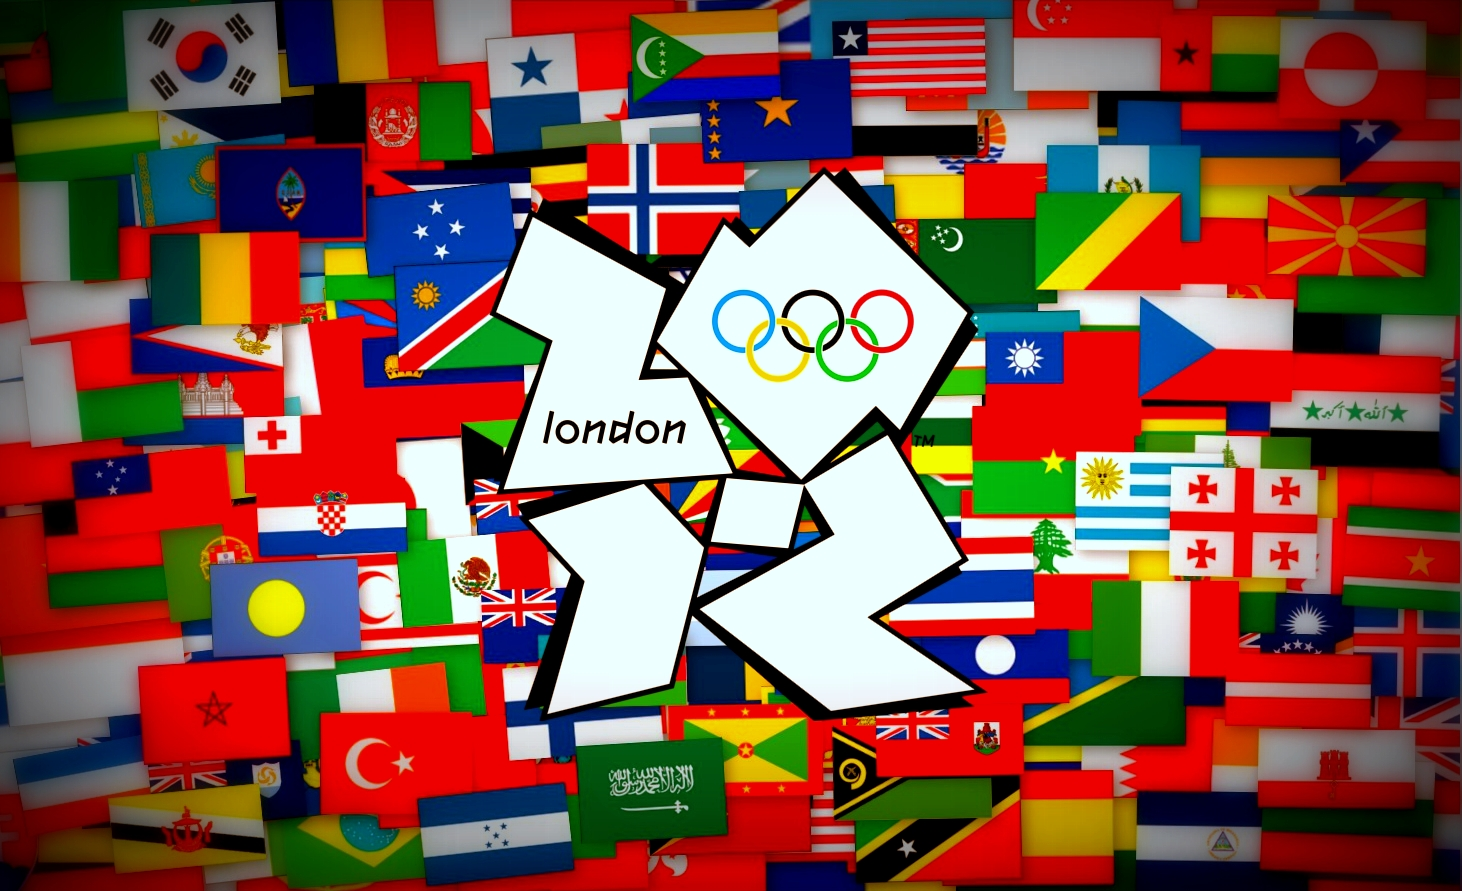 London olympics 2012 logo wallpaper hd olympics game games